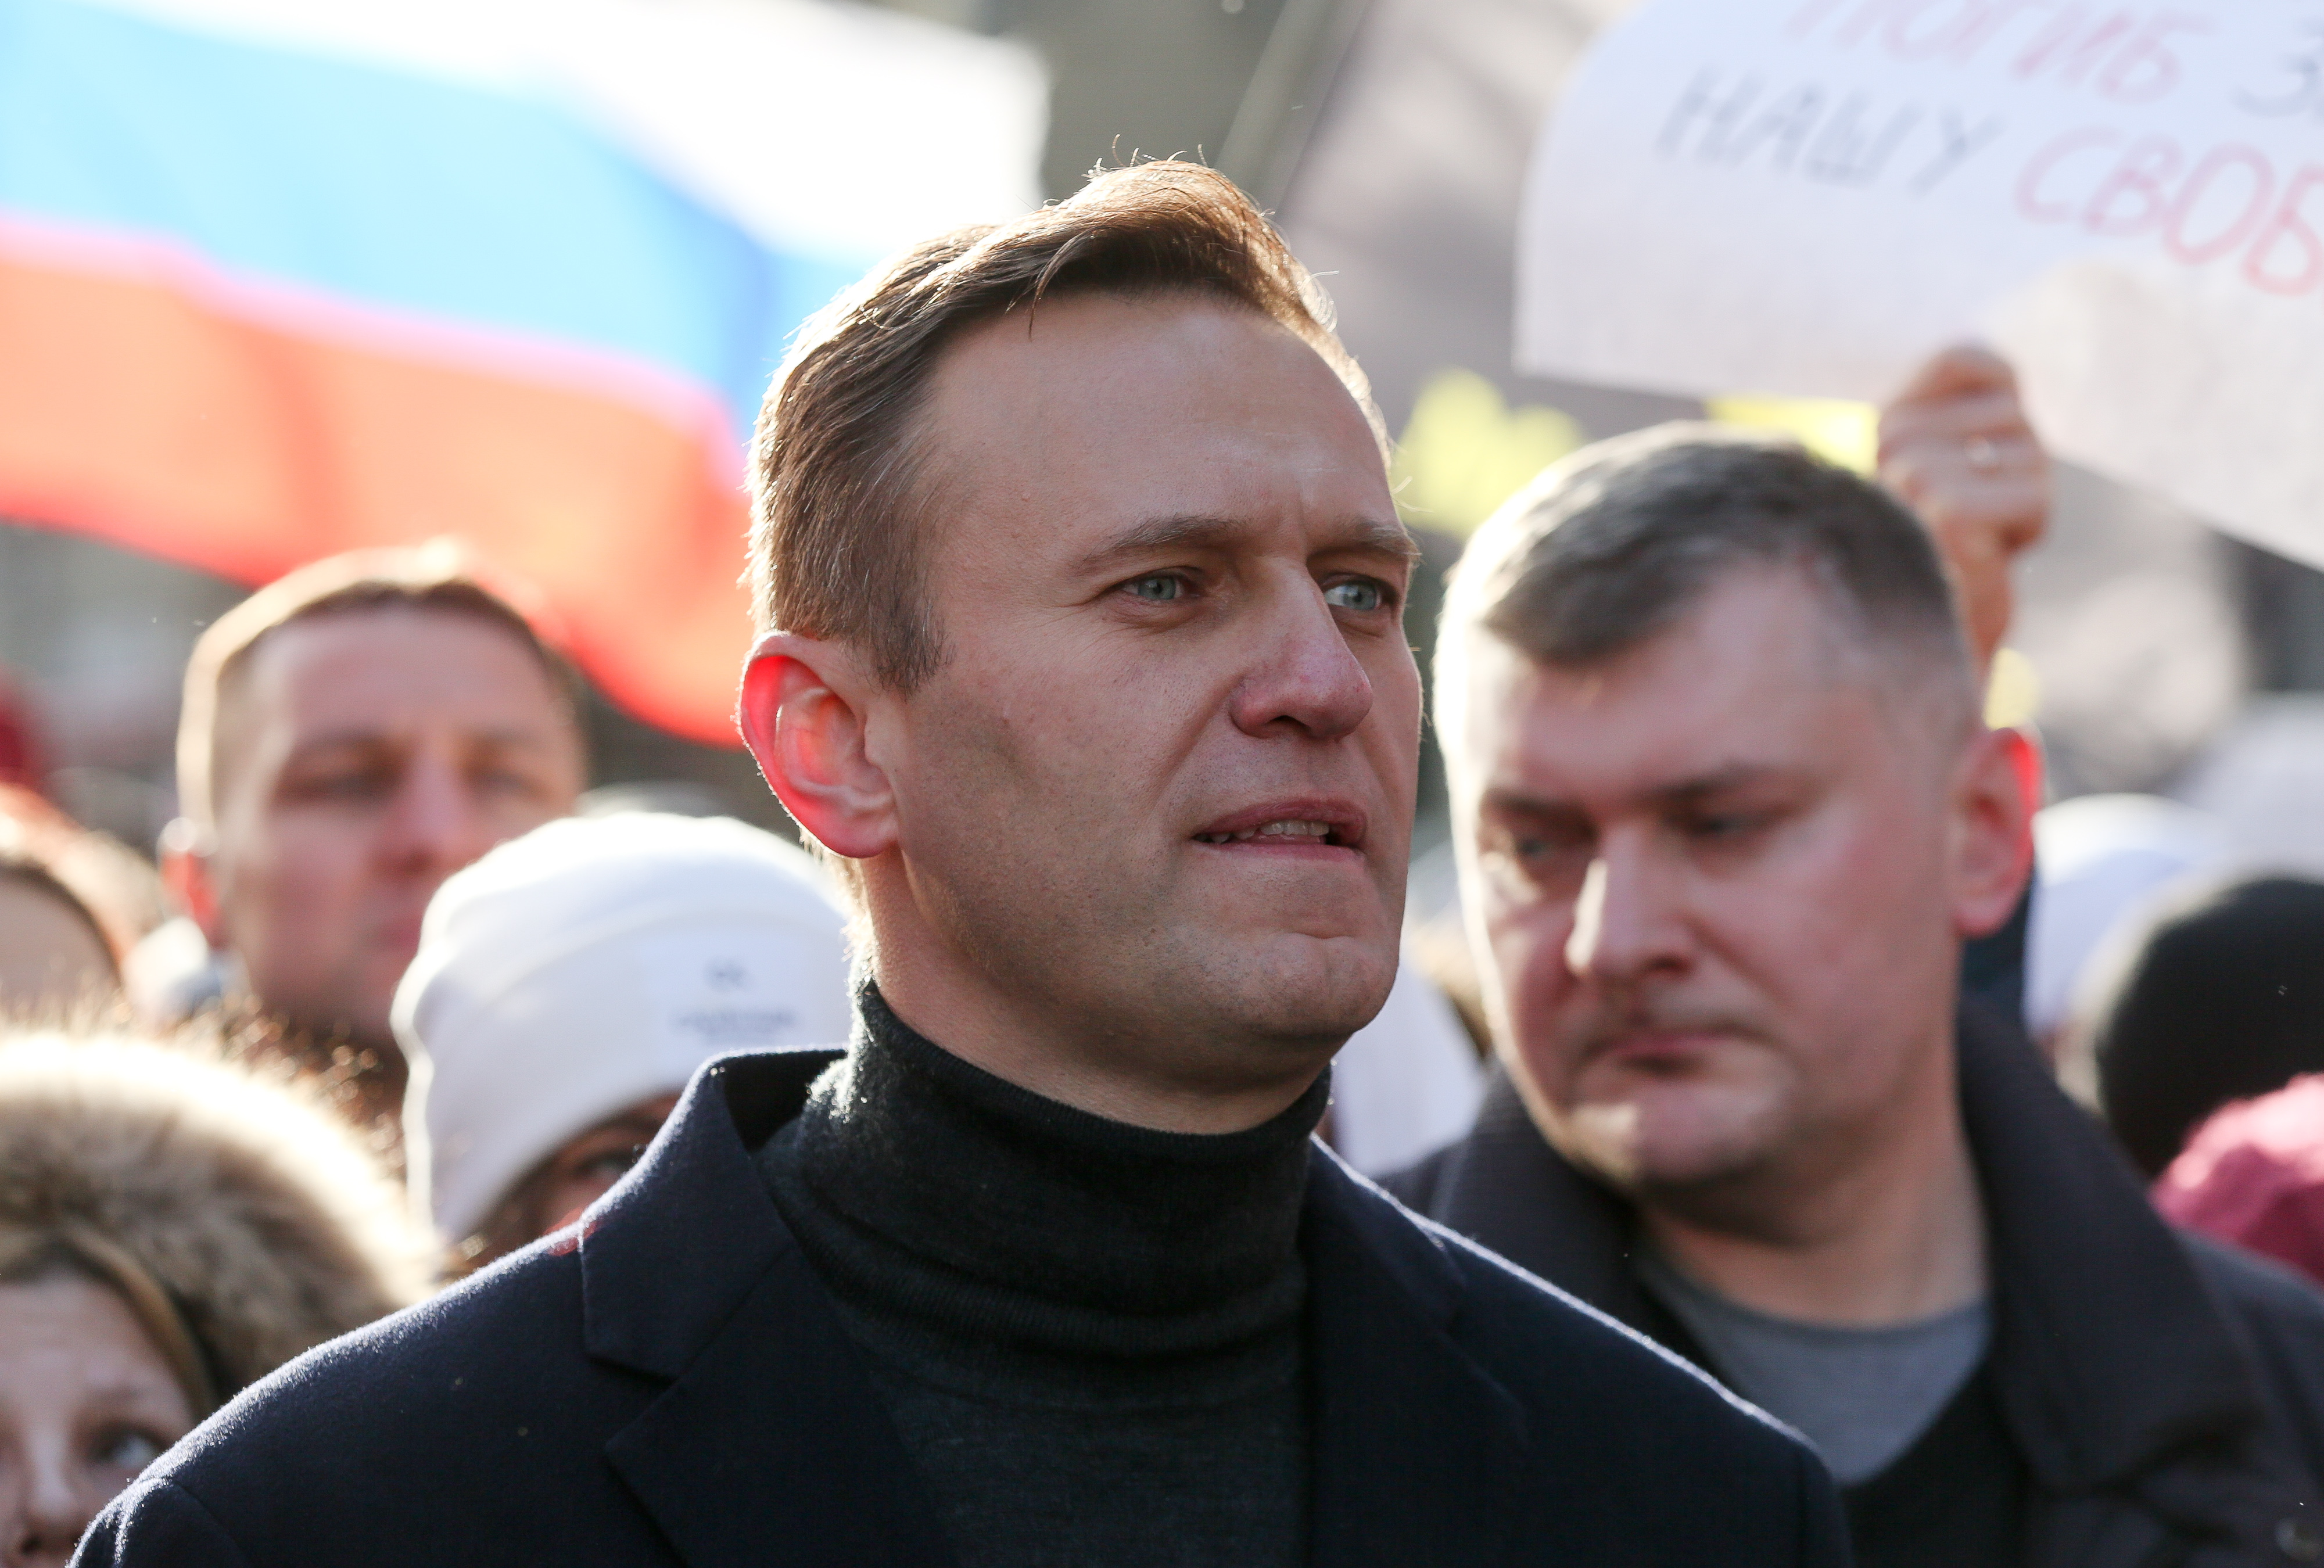 Alexey Navalny, Russian opposition leader, walks with demonstrators during a rally in Moscow, Russia, on Saturday, Feb. 29, 2019.